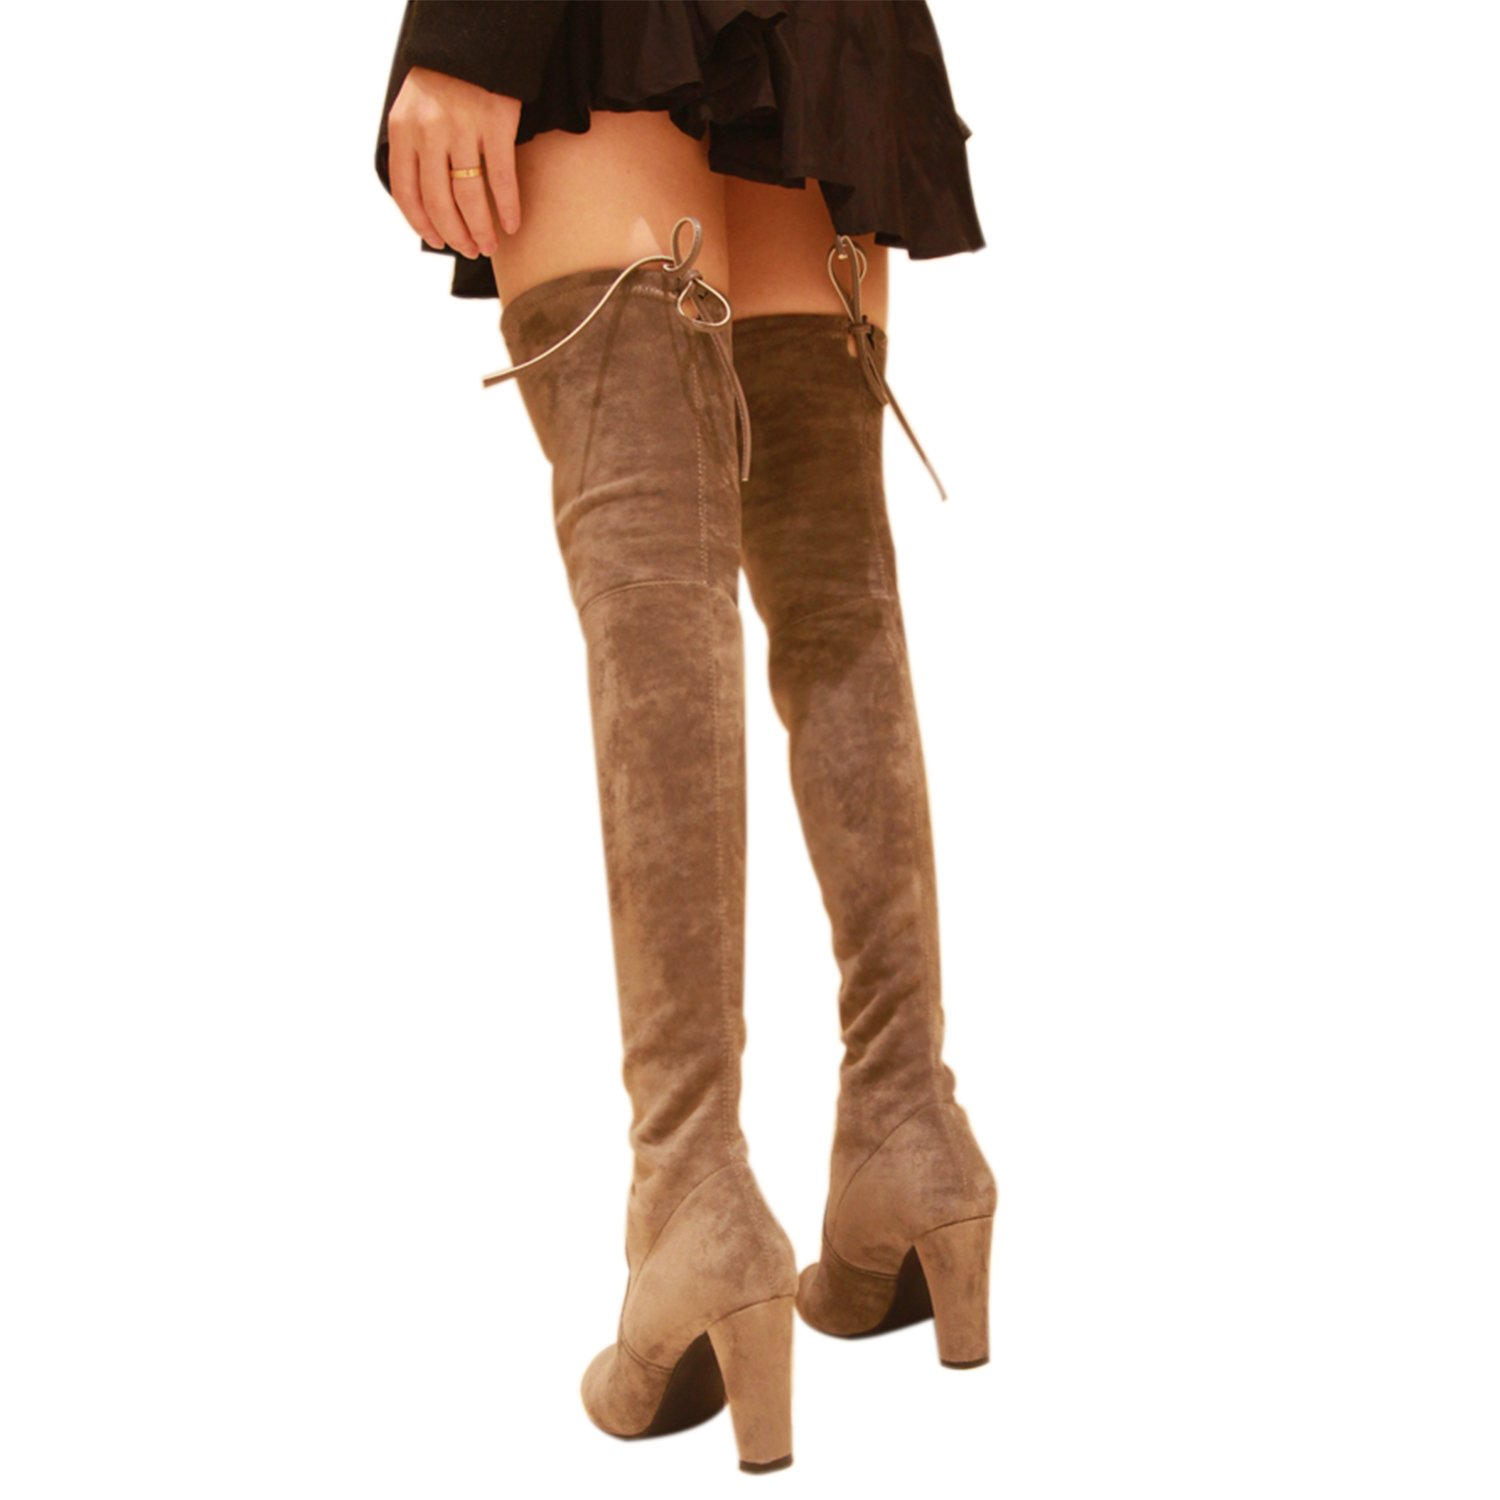 13b00c1f2e8 Galleon - Kaitlyn Pan High Heel Grey Over The Knee Boots(KP-OKB-HL-GR-40)